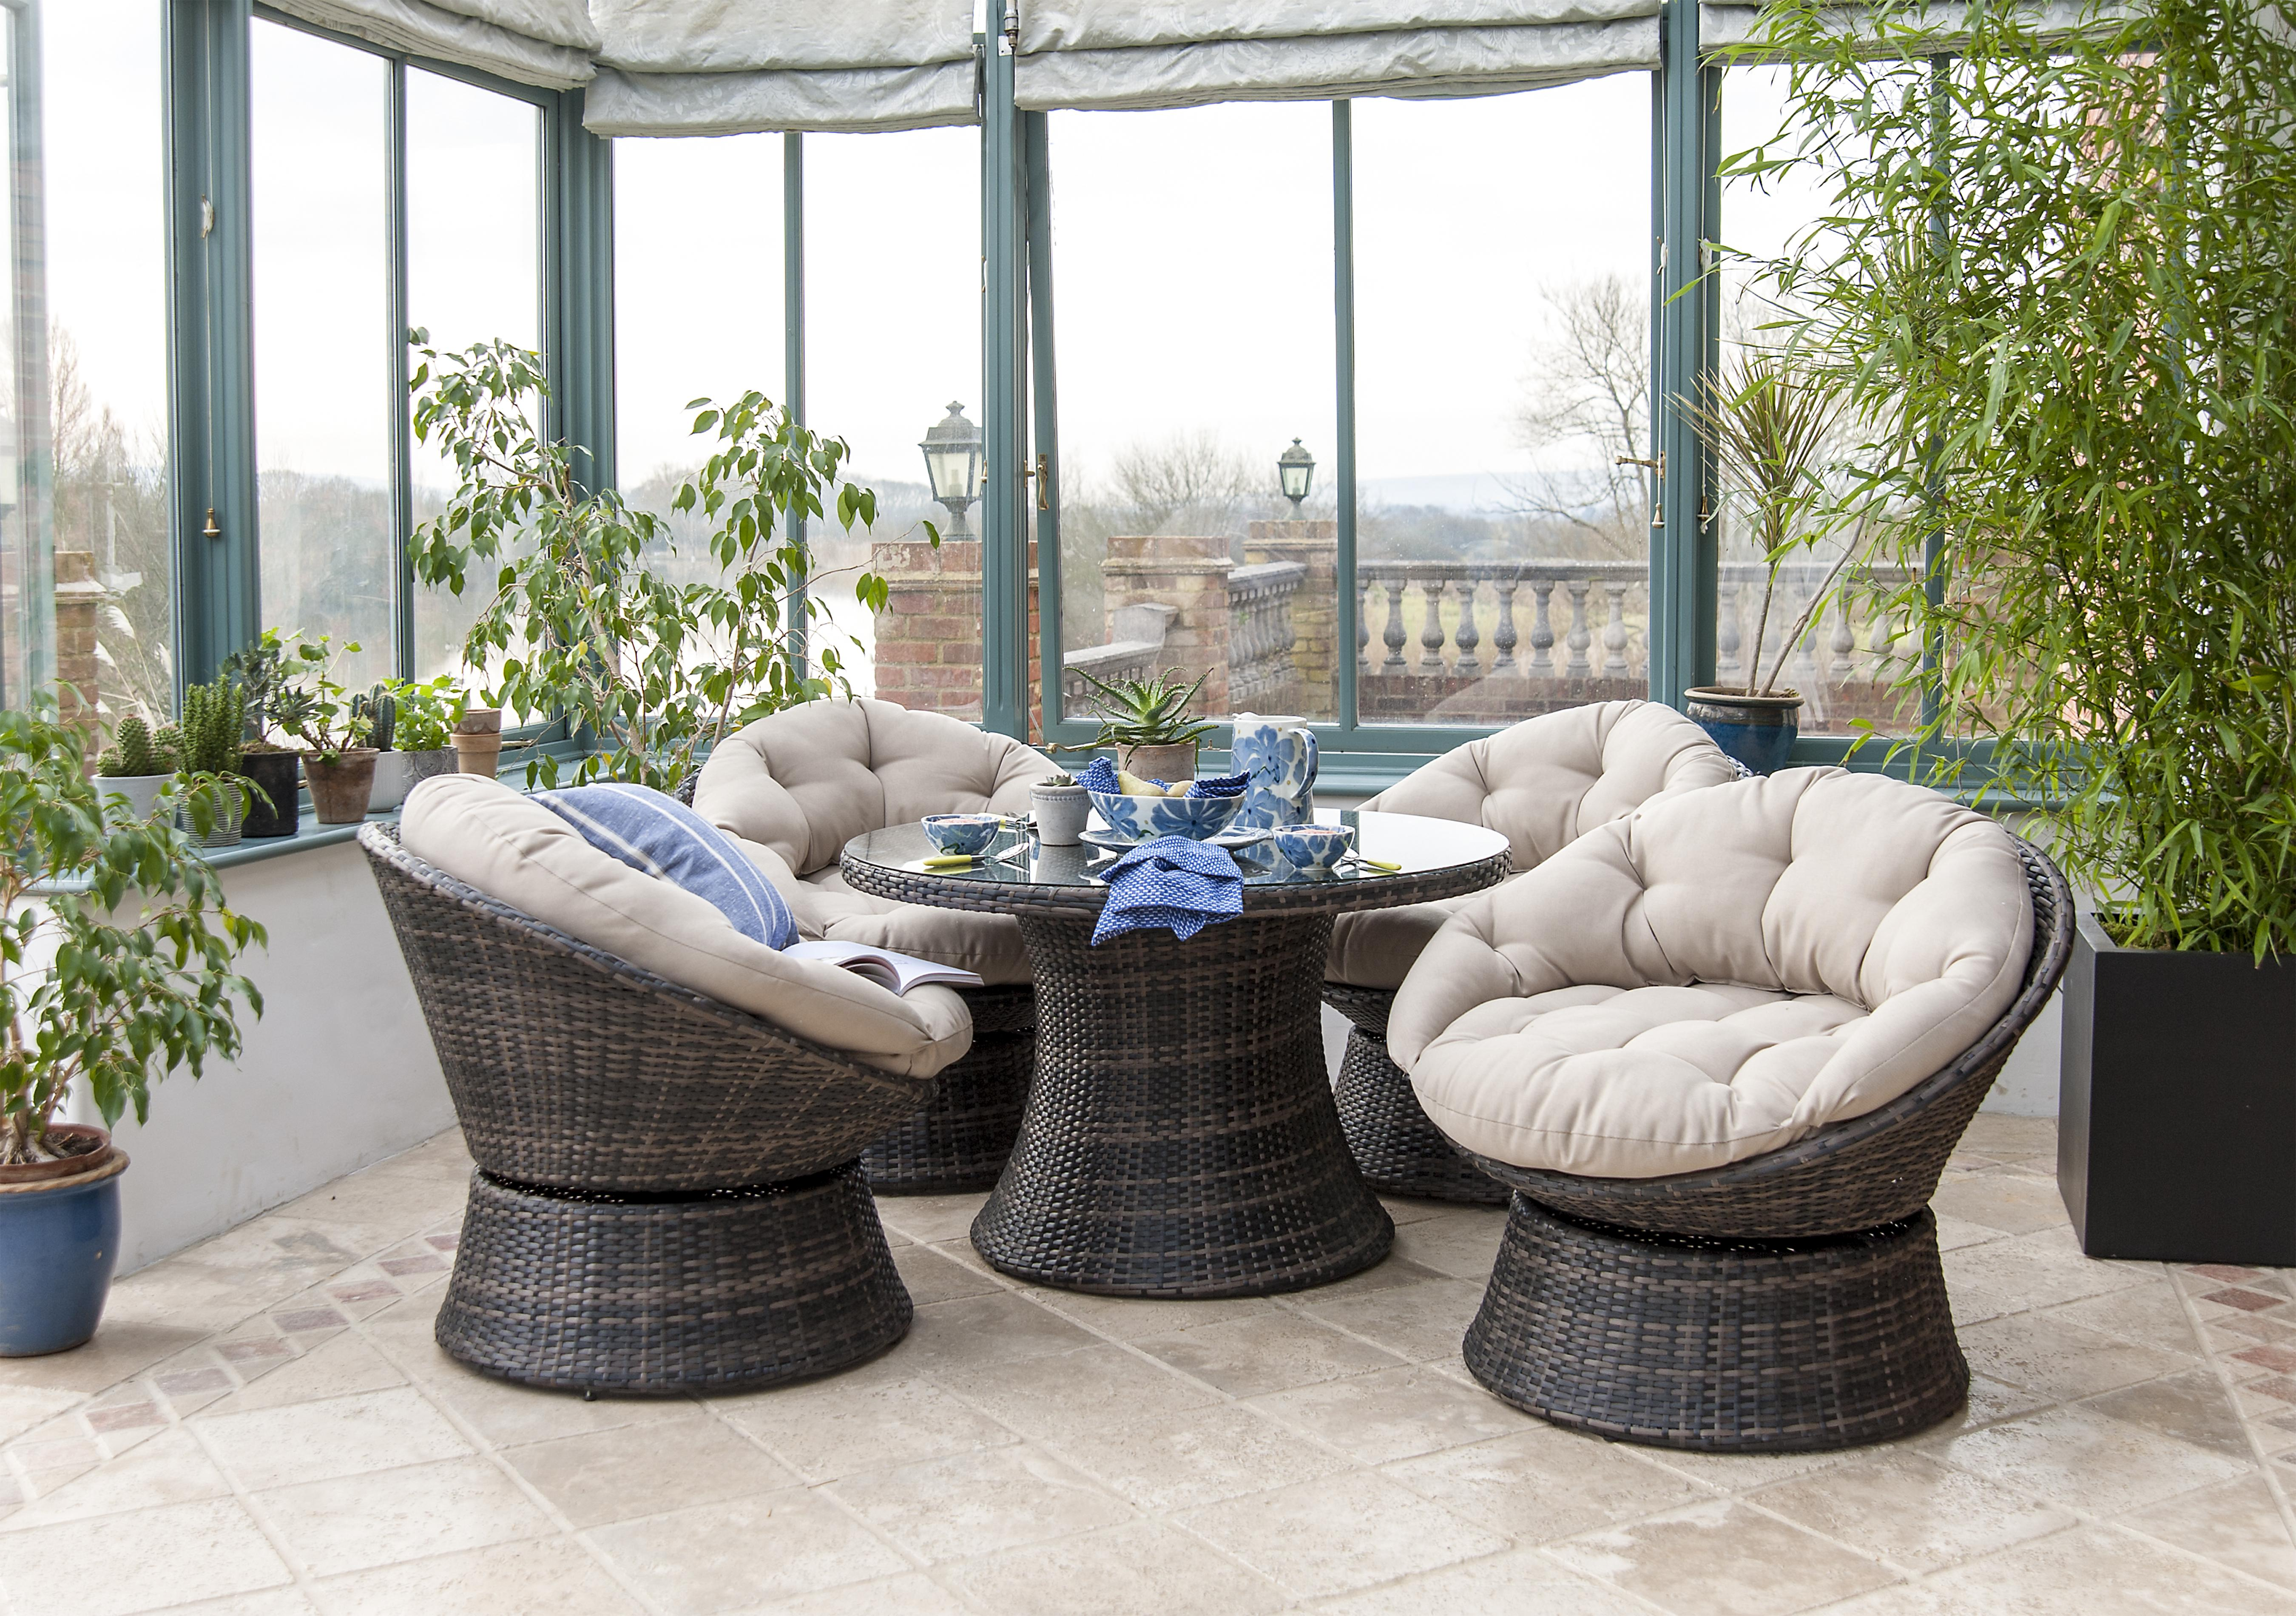 Garden Furniture Village Studio Photography For The Likes Of John